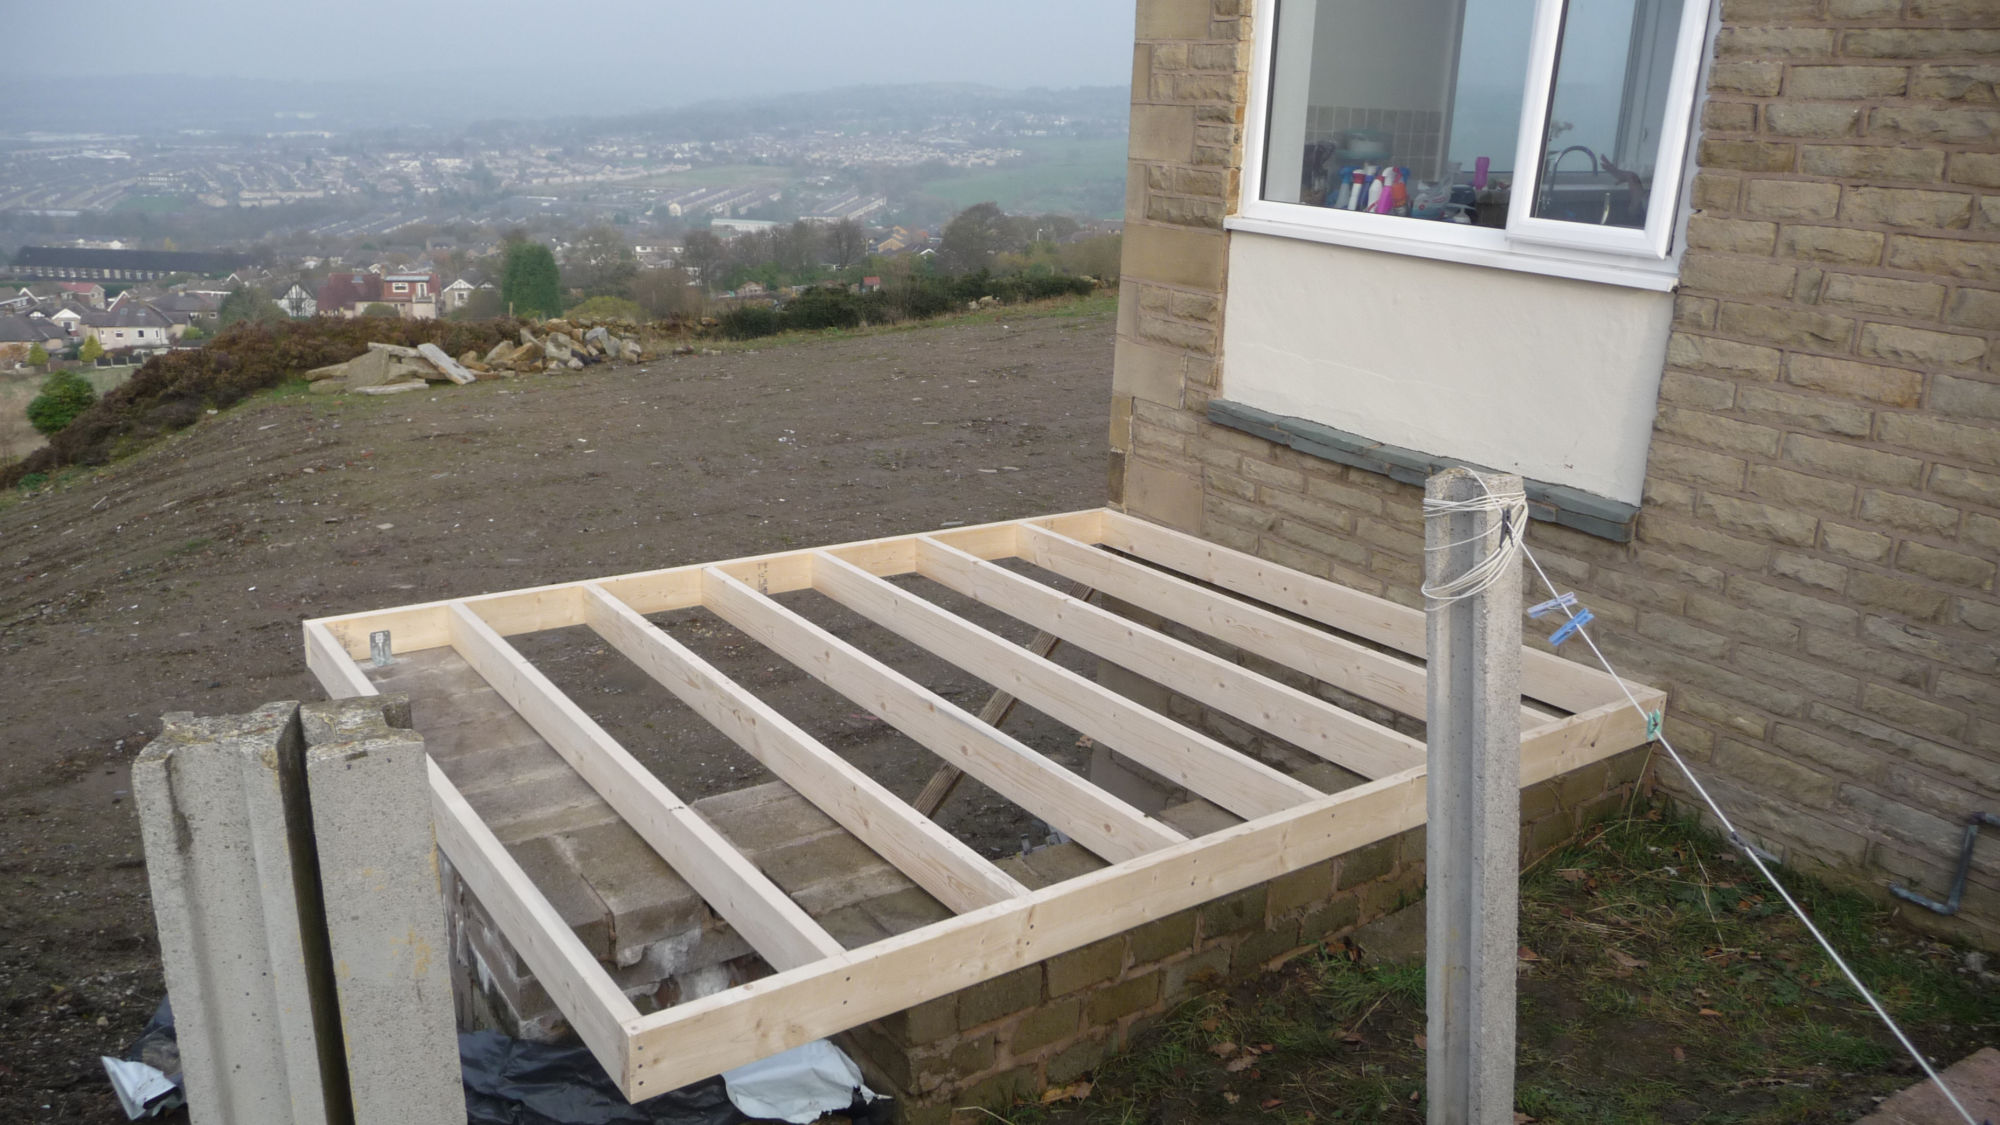 Building a new flat roof